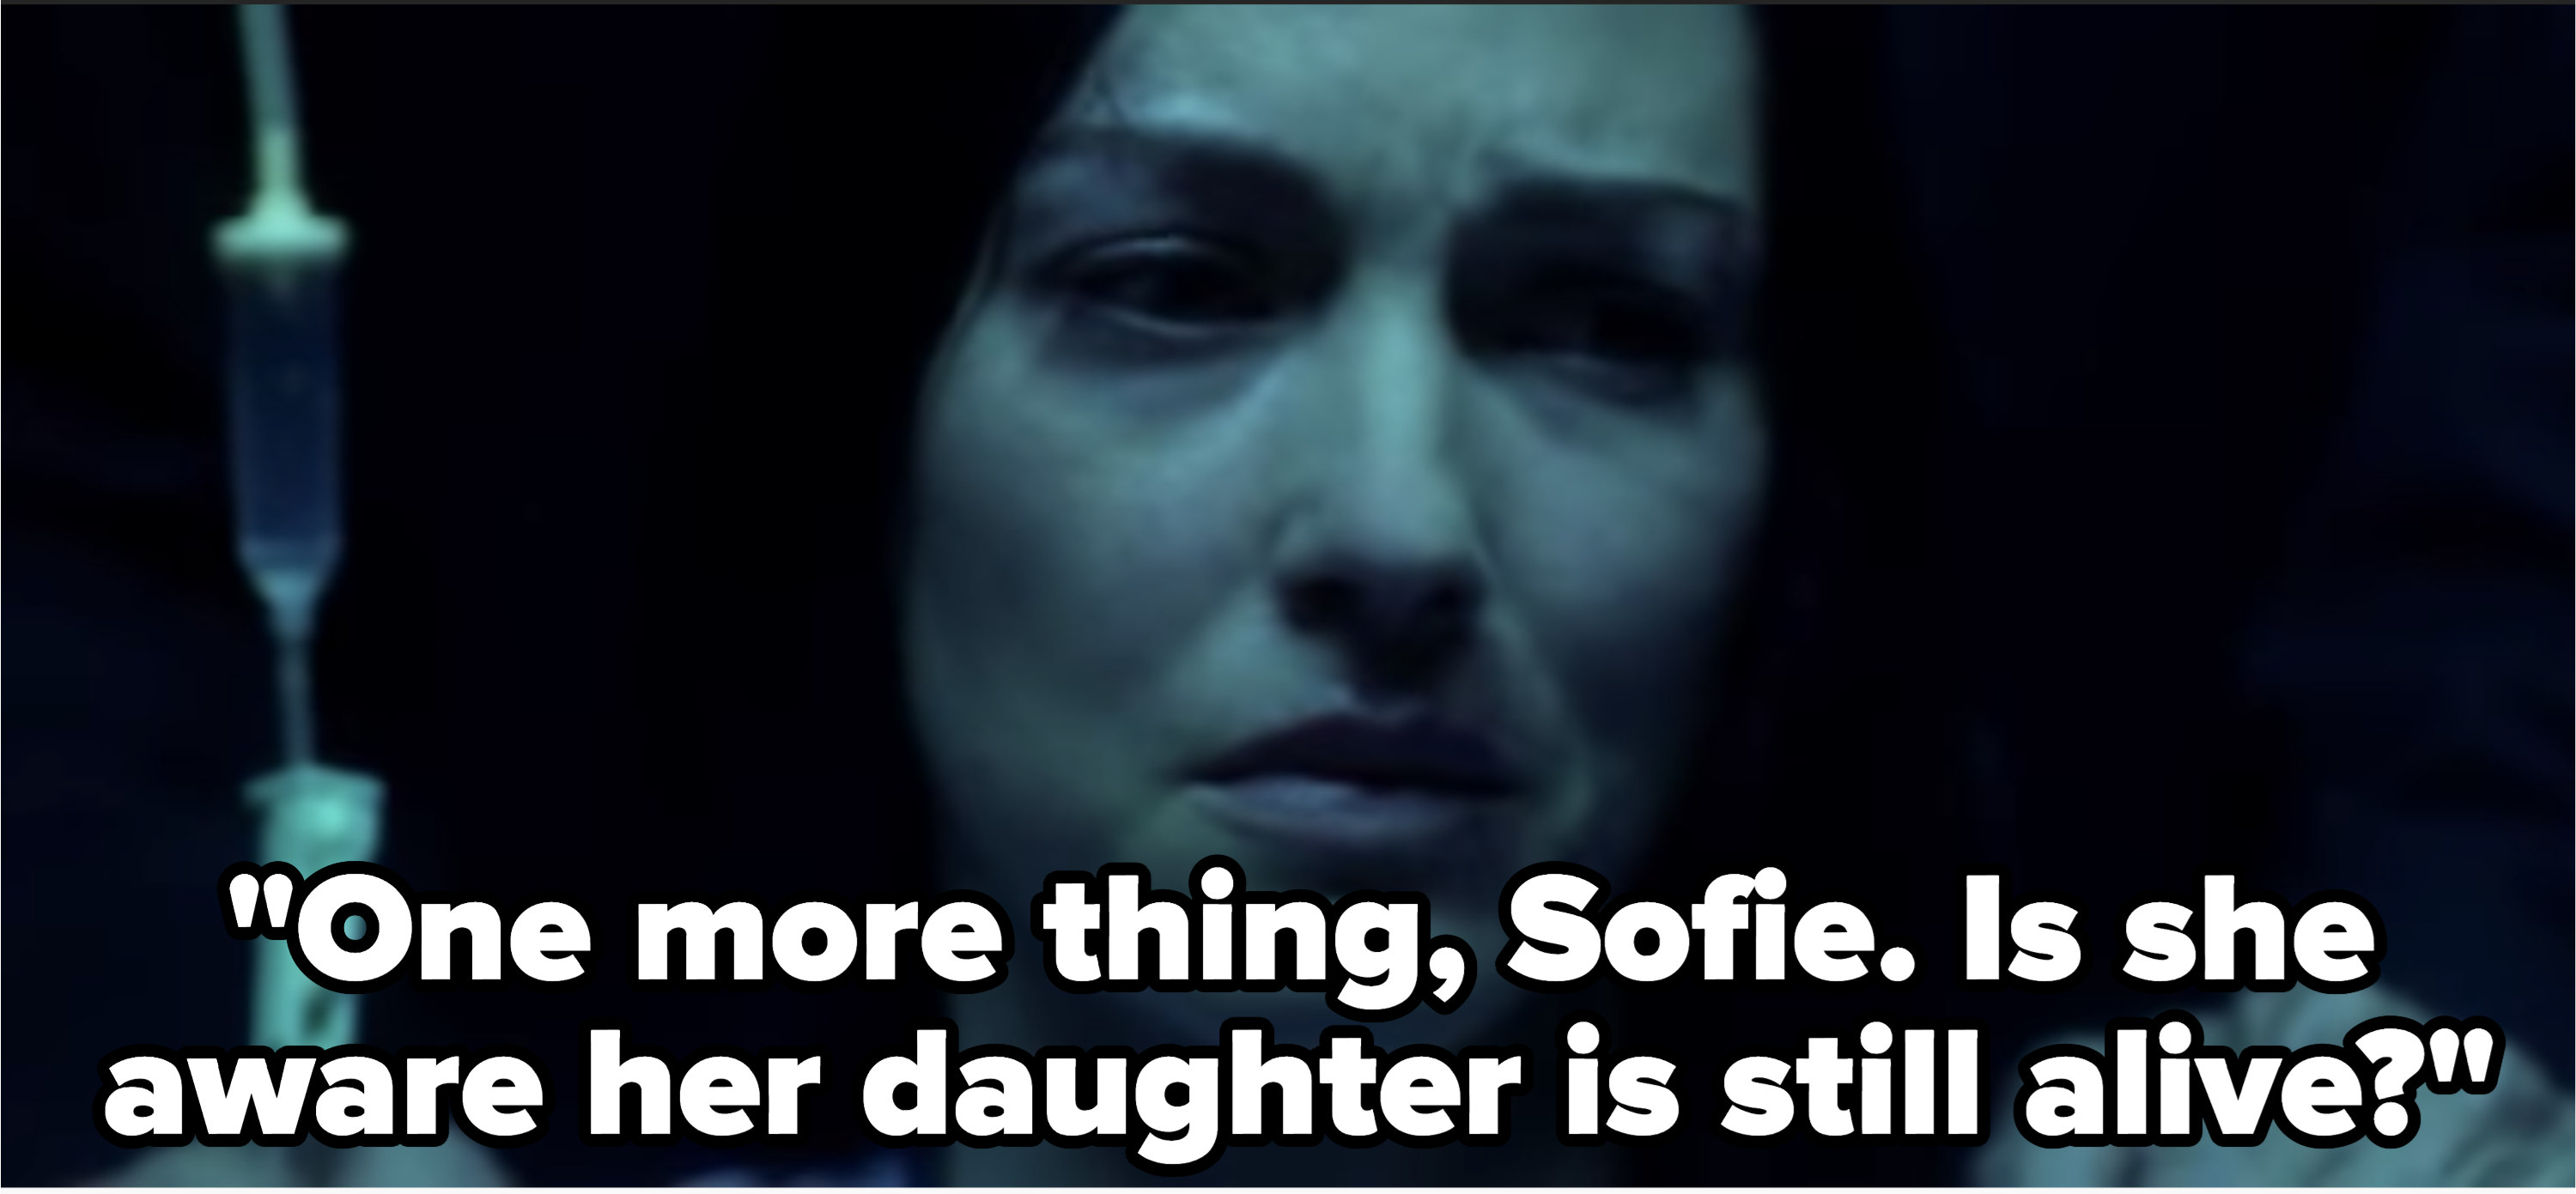 """Bill asks Sofie, """"One more thing, Sofie: Is she aware her daughter is still alive?"""""""